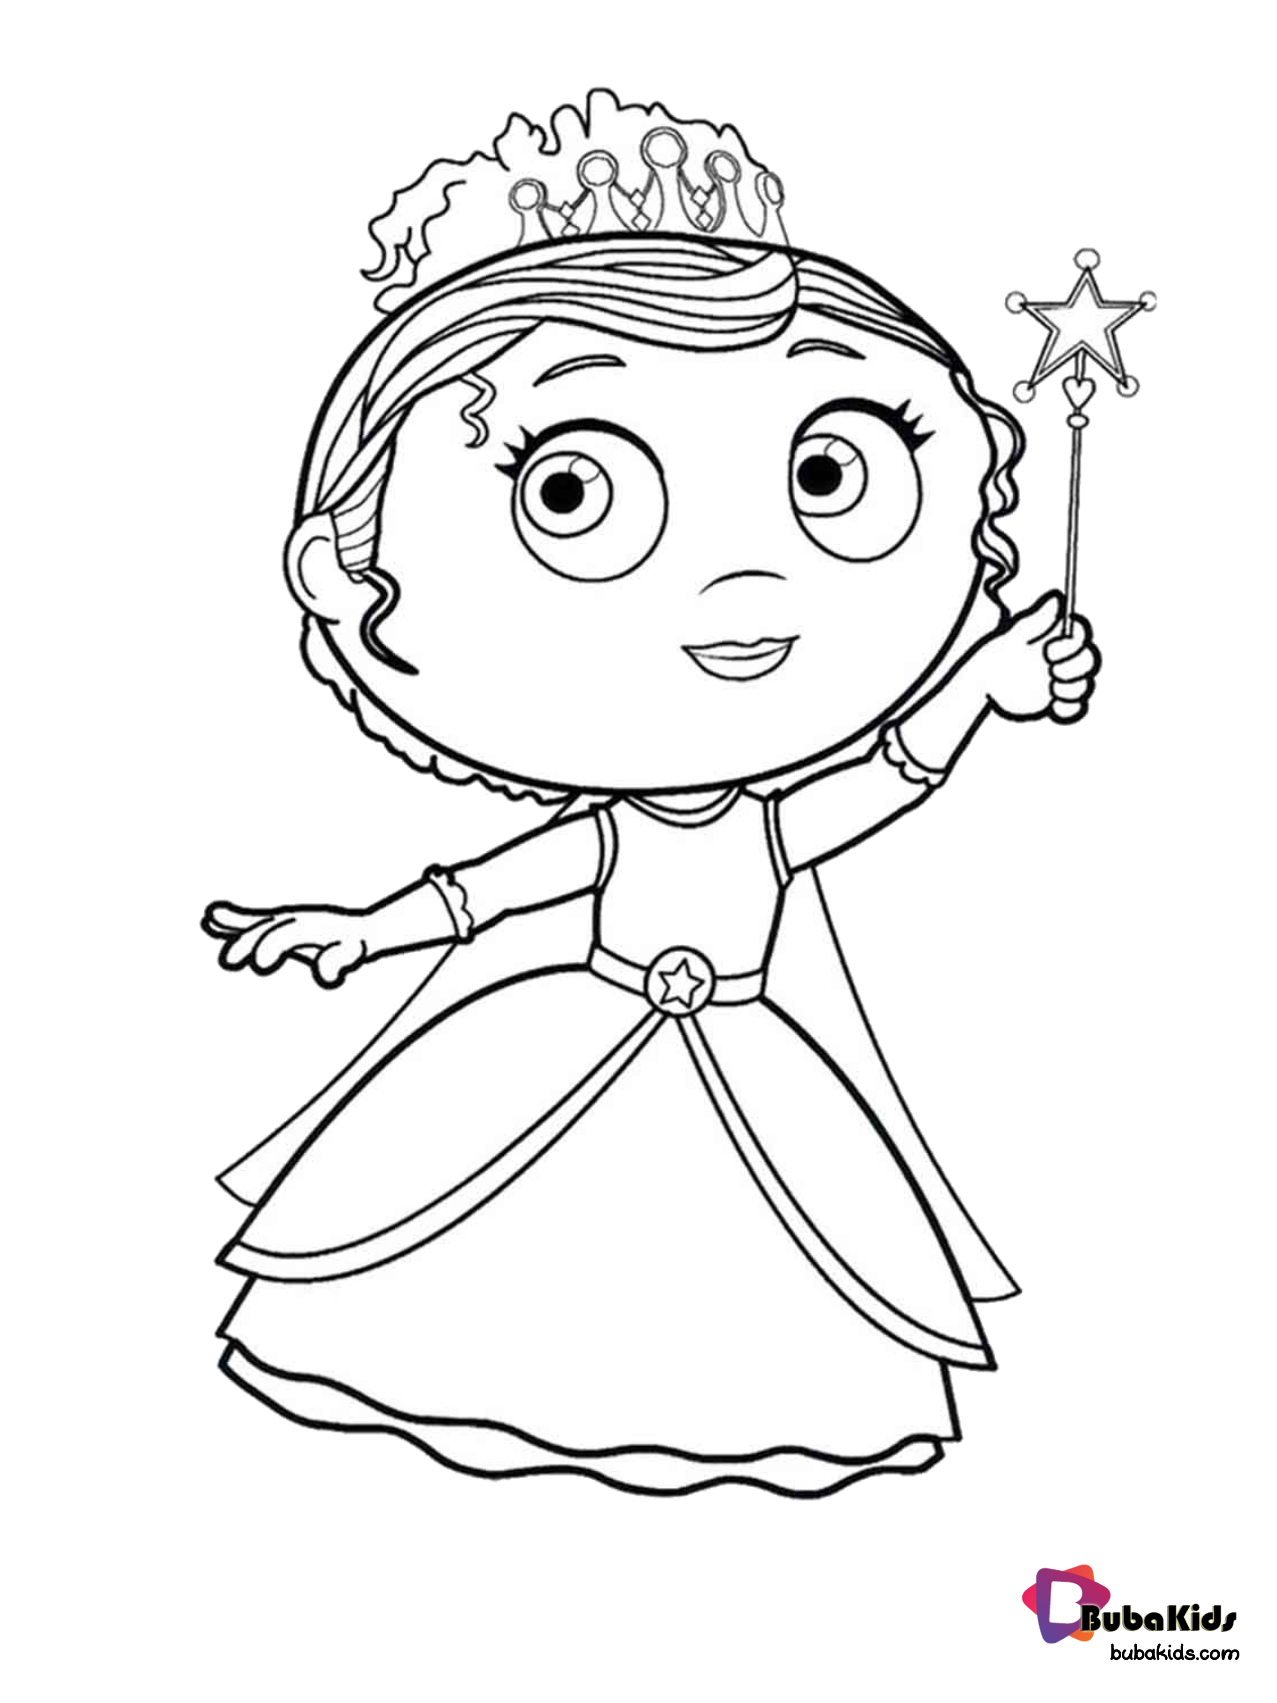 Super Why Coloring Page Collection Of Cartoon Coloring Pages For Teenage Printable That You Can Download And Print Free Download Super Why Freedownload S